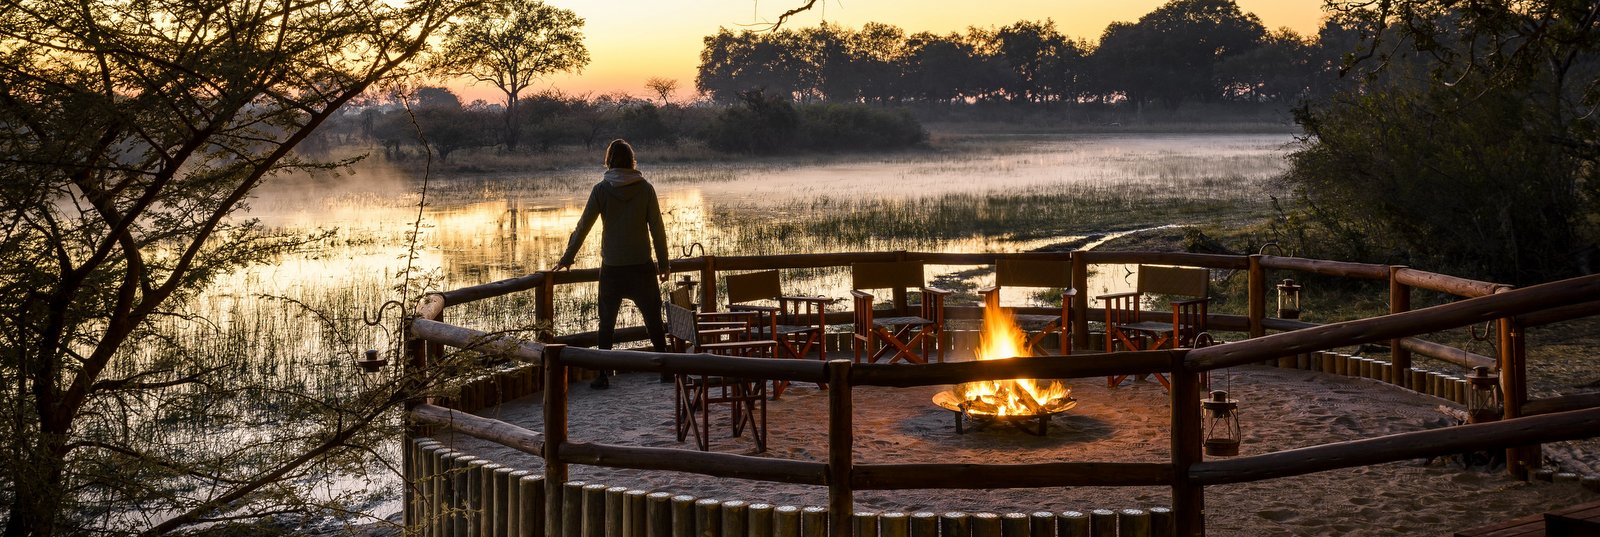 dawn-chiefs-camp-okavango-delta